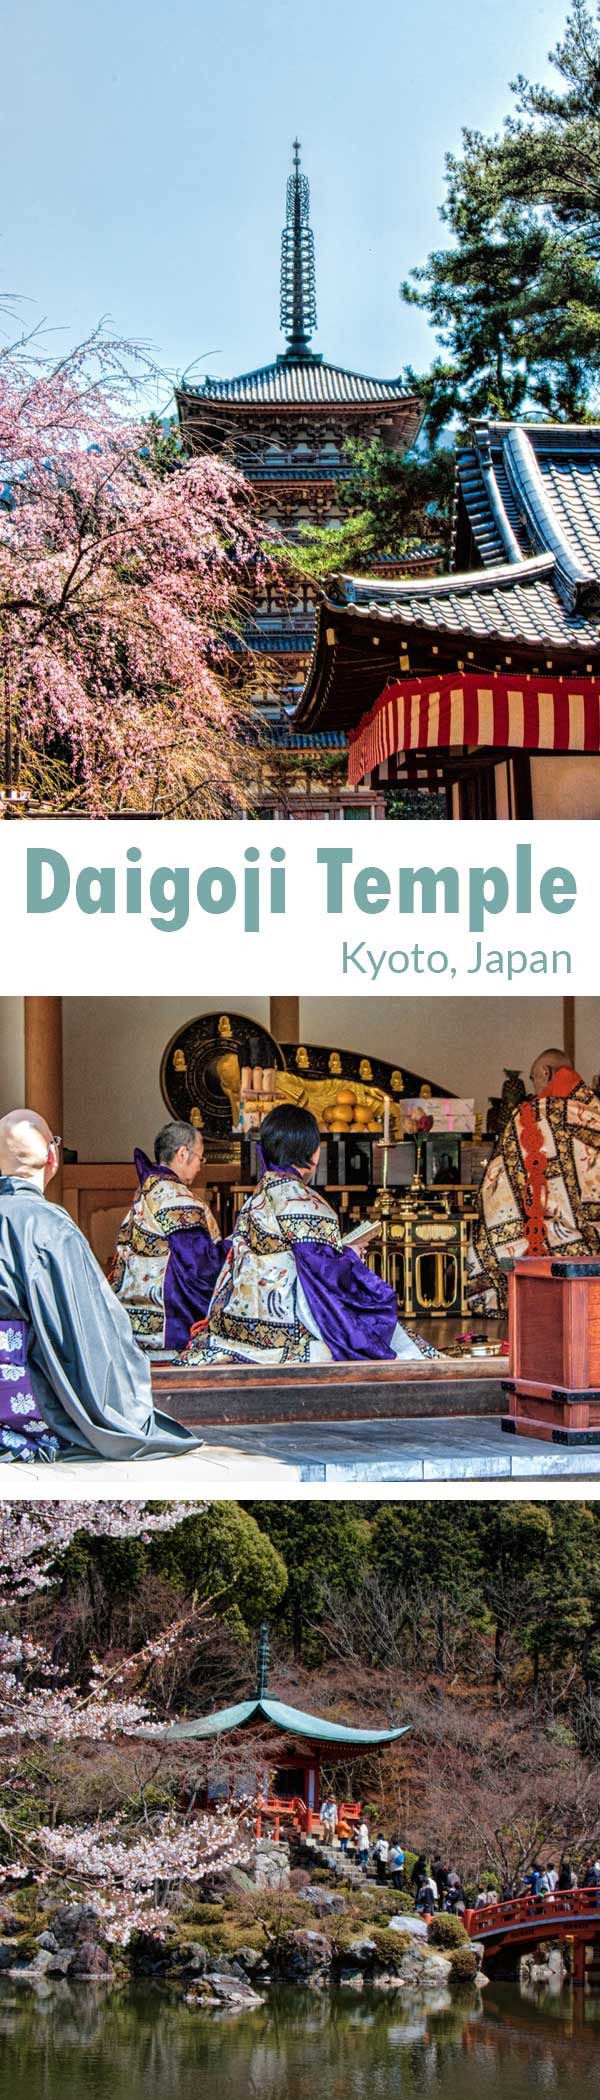 A guide to Daigoji Temple in Kyoto, Japan